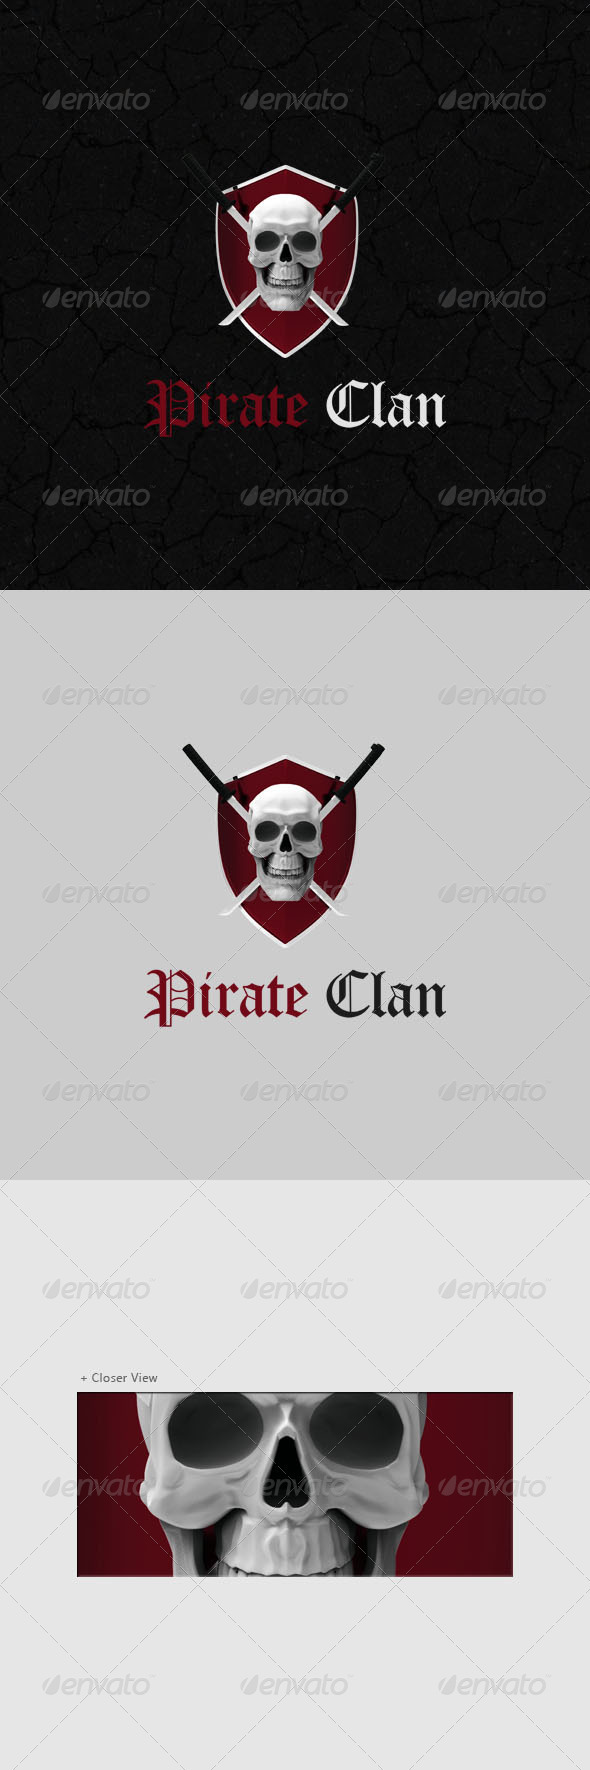 Pirate Logo 3D - 3d Abstract